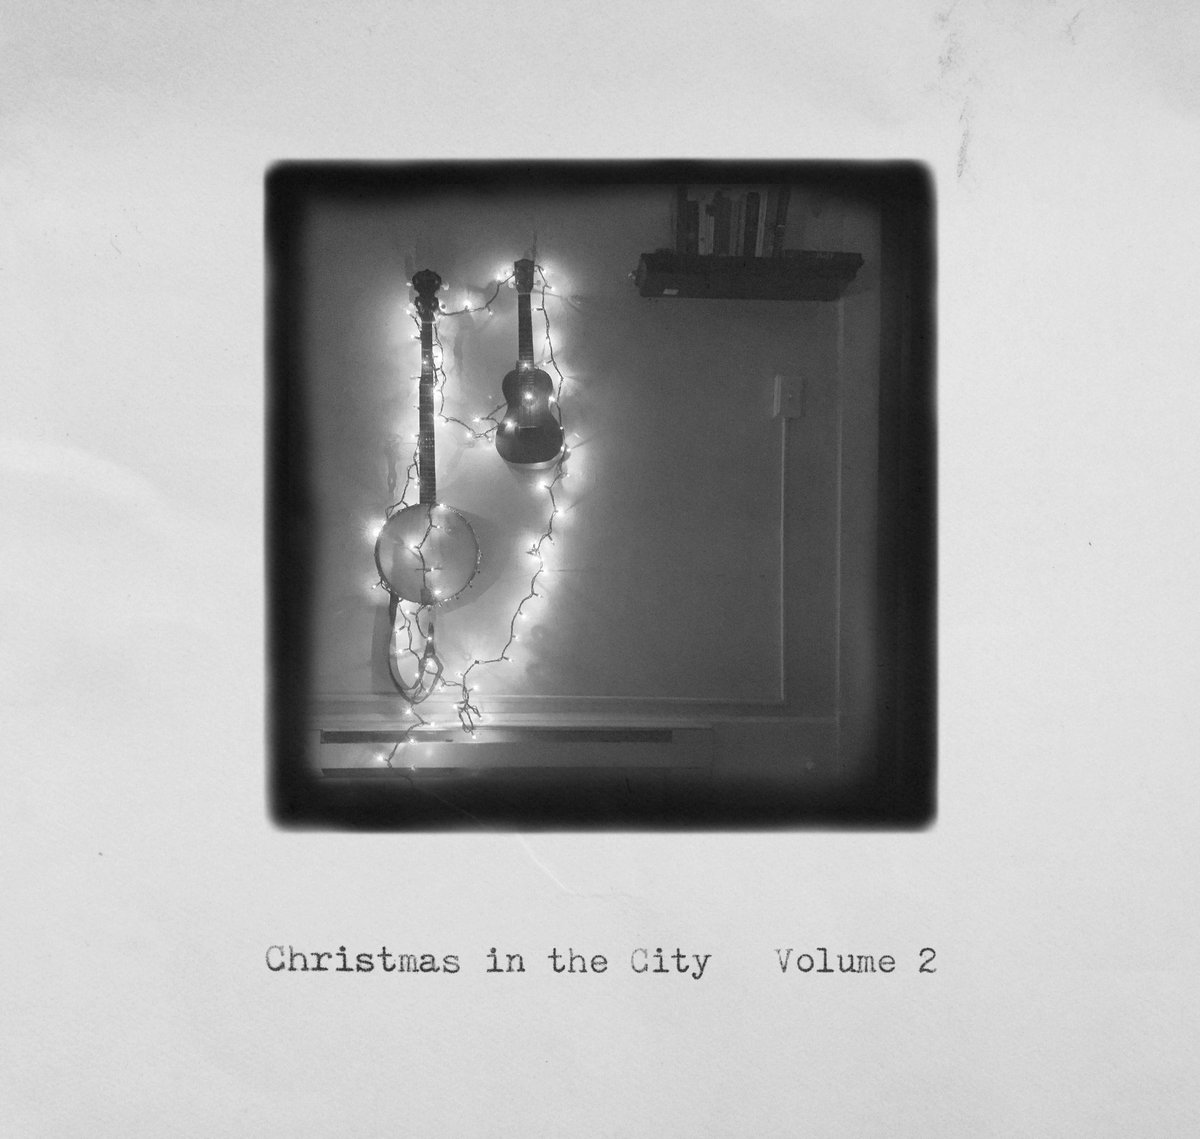 Lily and the Fox - -10 Degrees @ 'Christmas in the City Vol. 2' album (11th ave records, 11thaverecords 11th avenue)